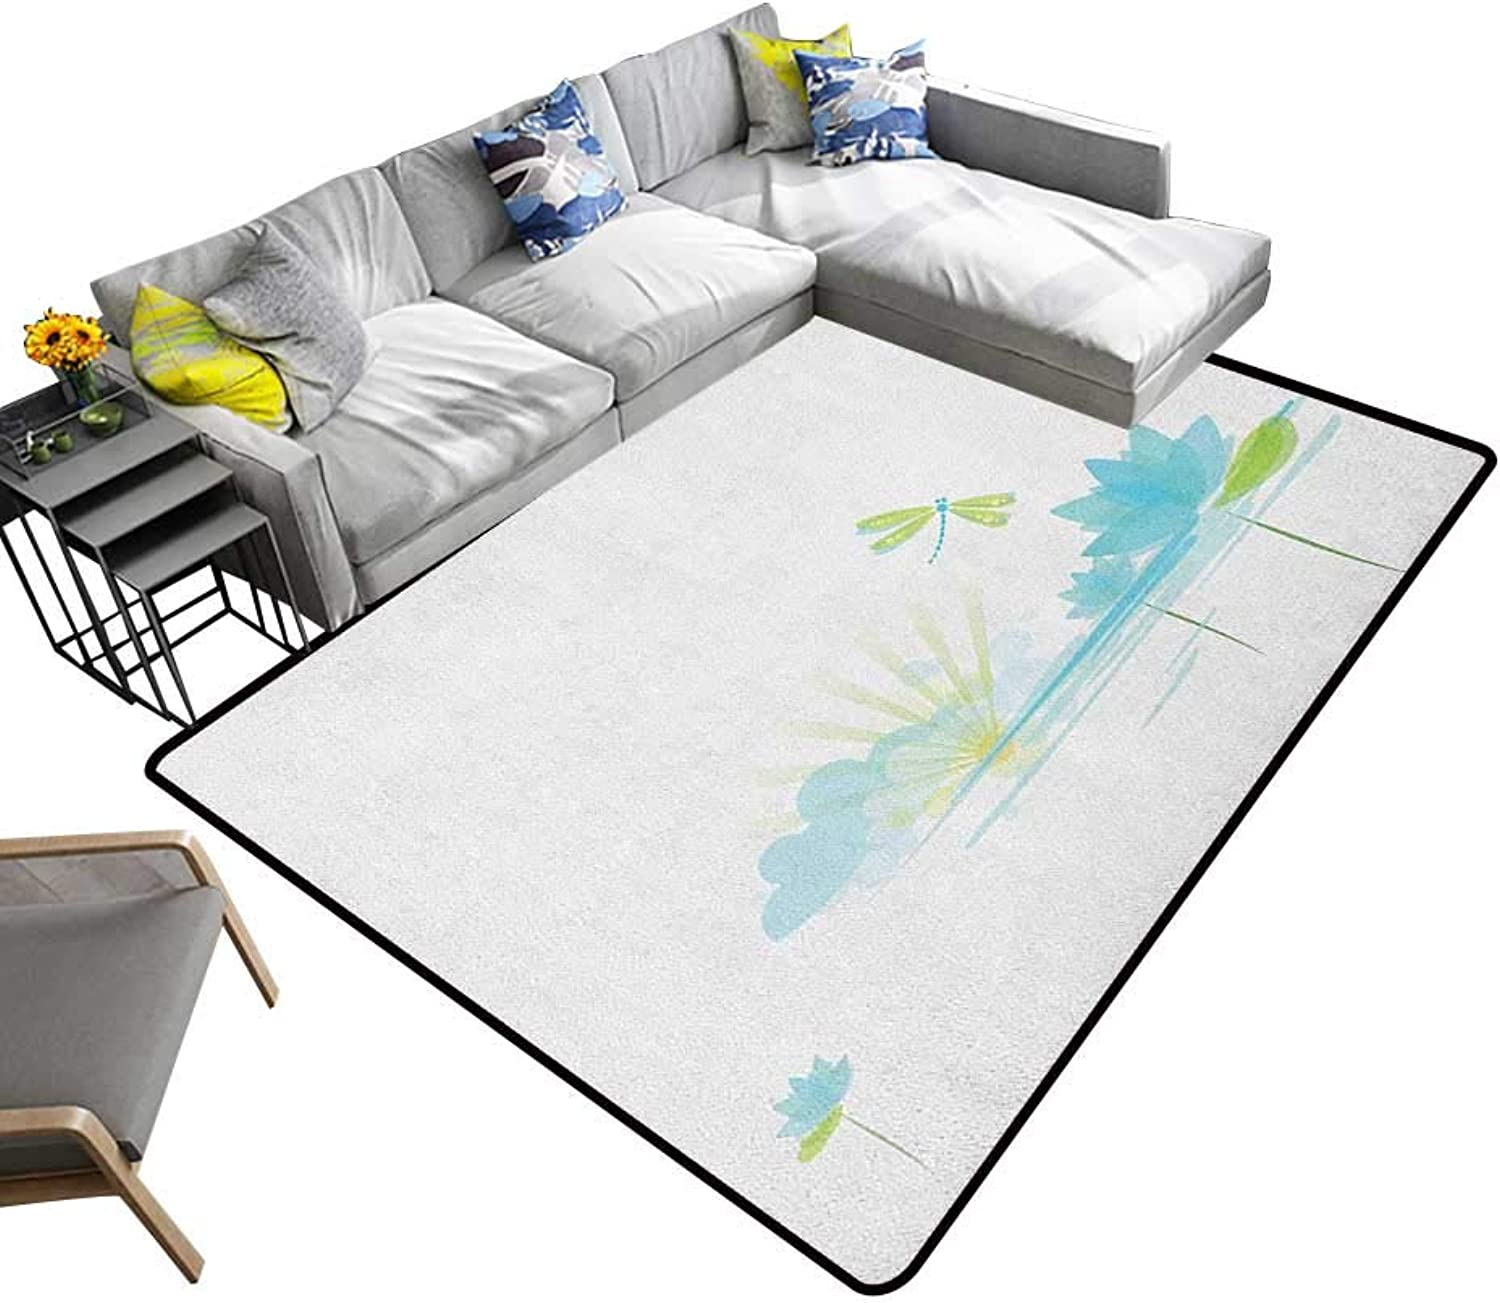 Dragonfly Non-Slip Floor mat Waterlily and Dragonfly Nature Background Clouds Lake Sun Design 70 x110 ,Can be Used for Floor Decoration